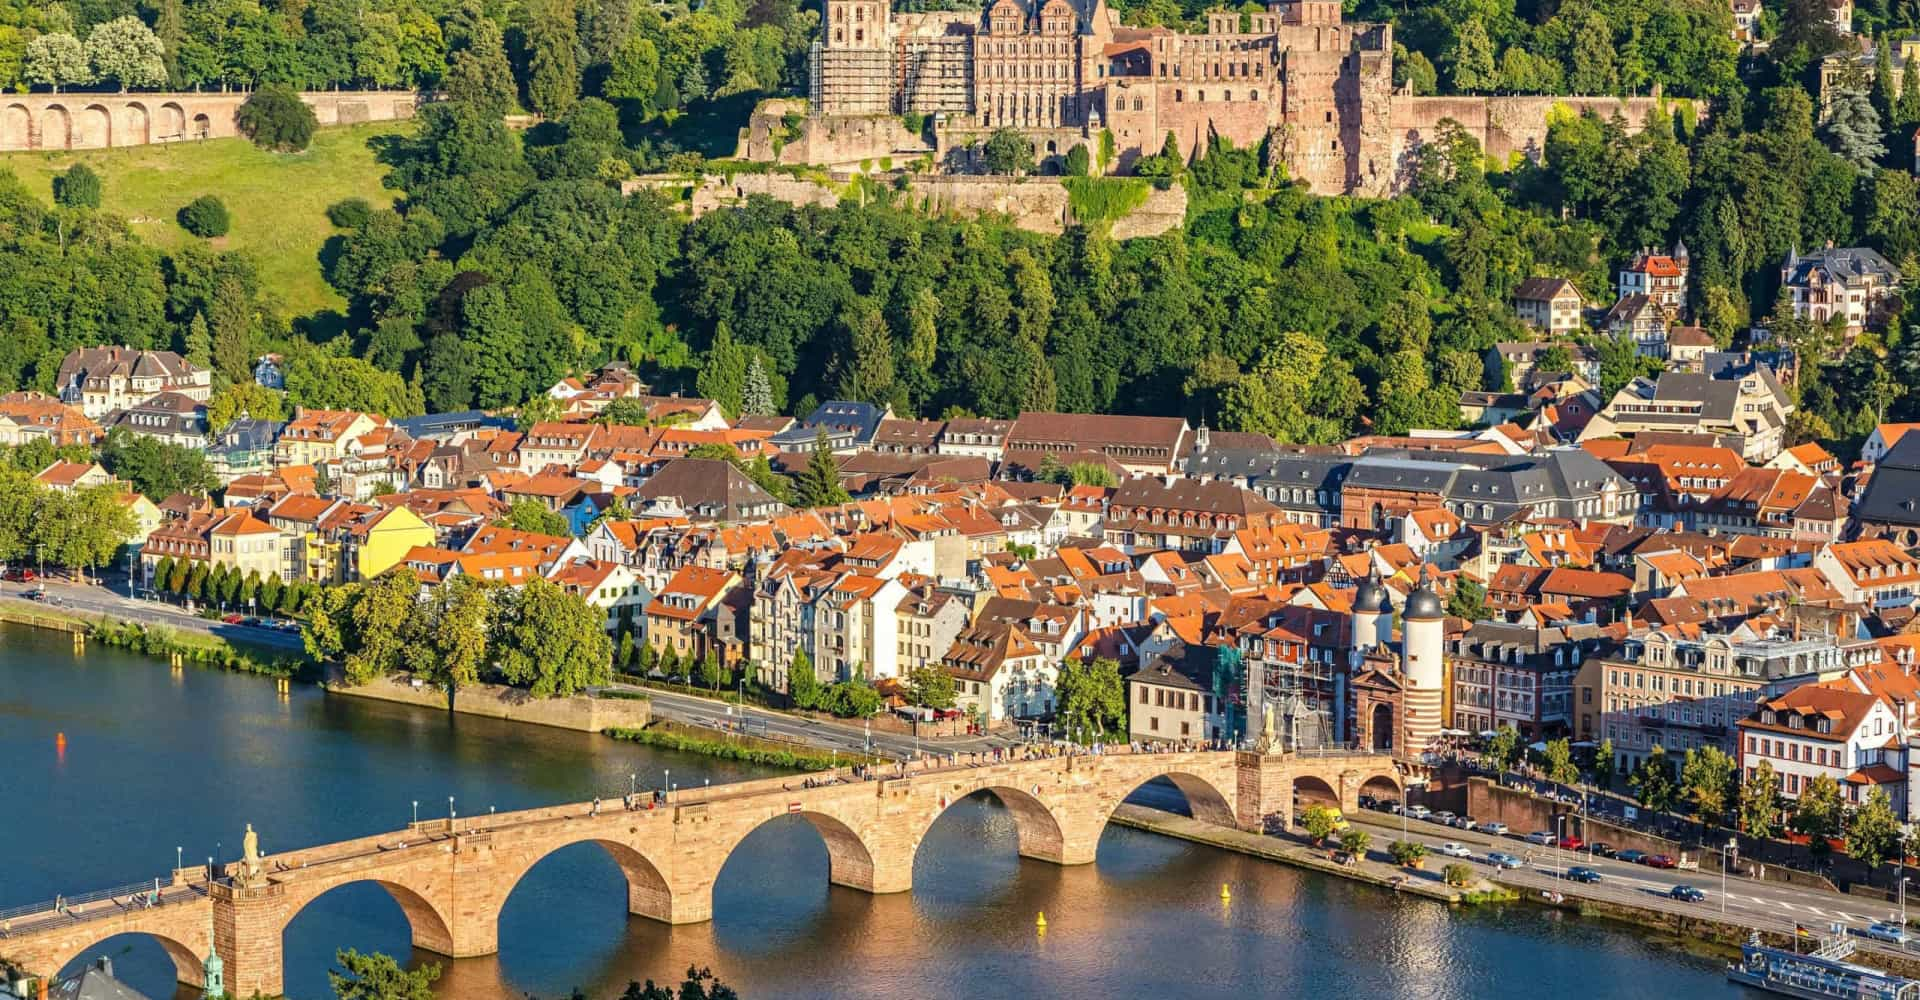 Delving into the romantic heart of Heidelberg